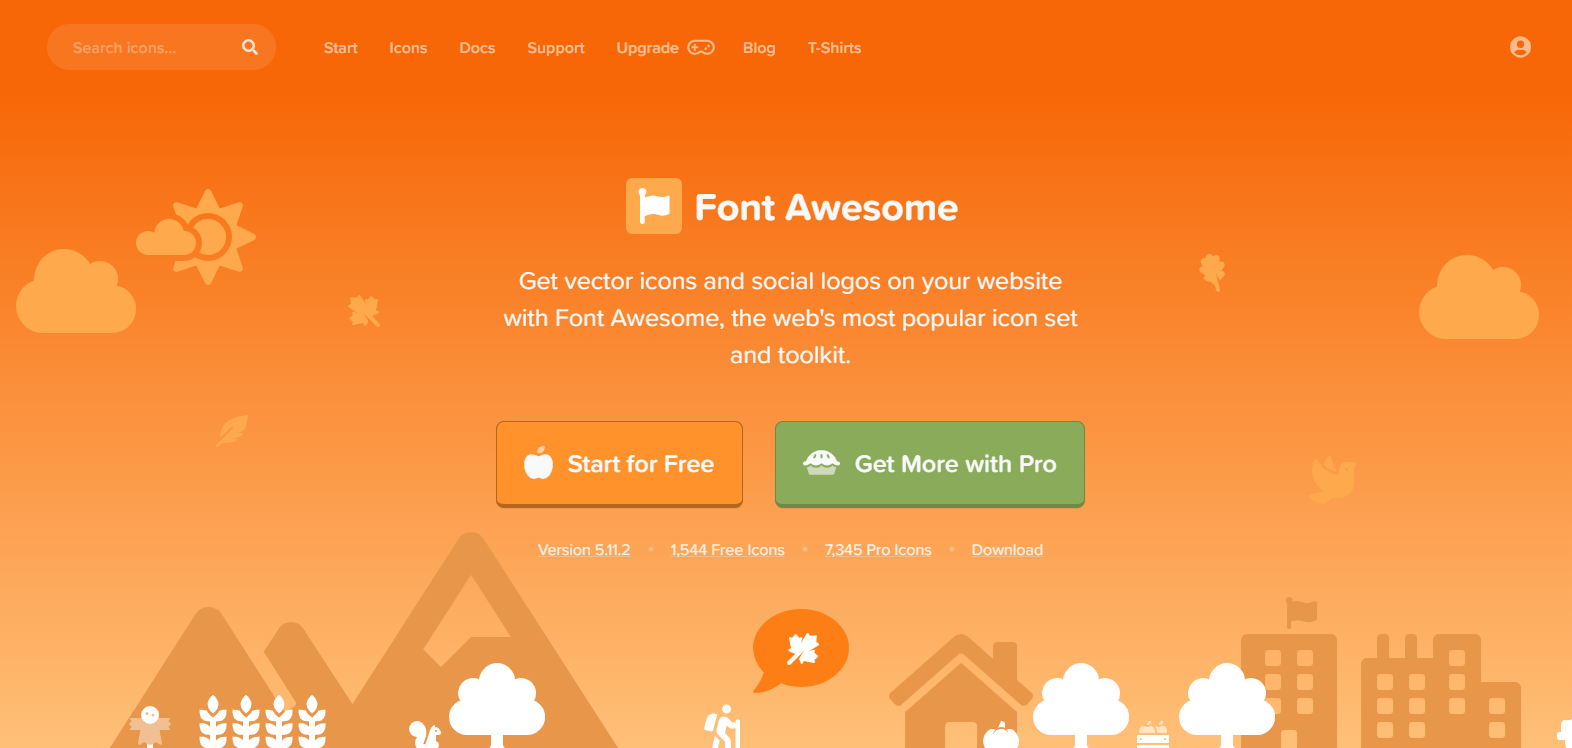 Font Awesome Official Webpage